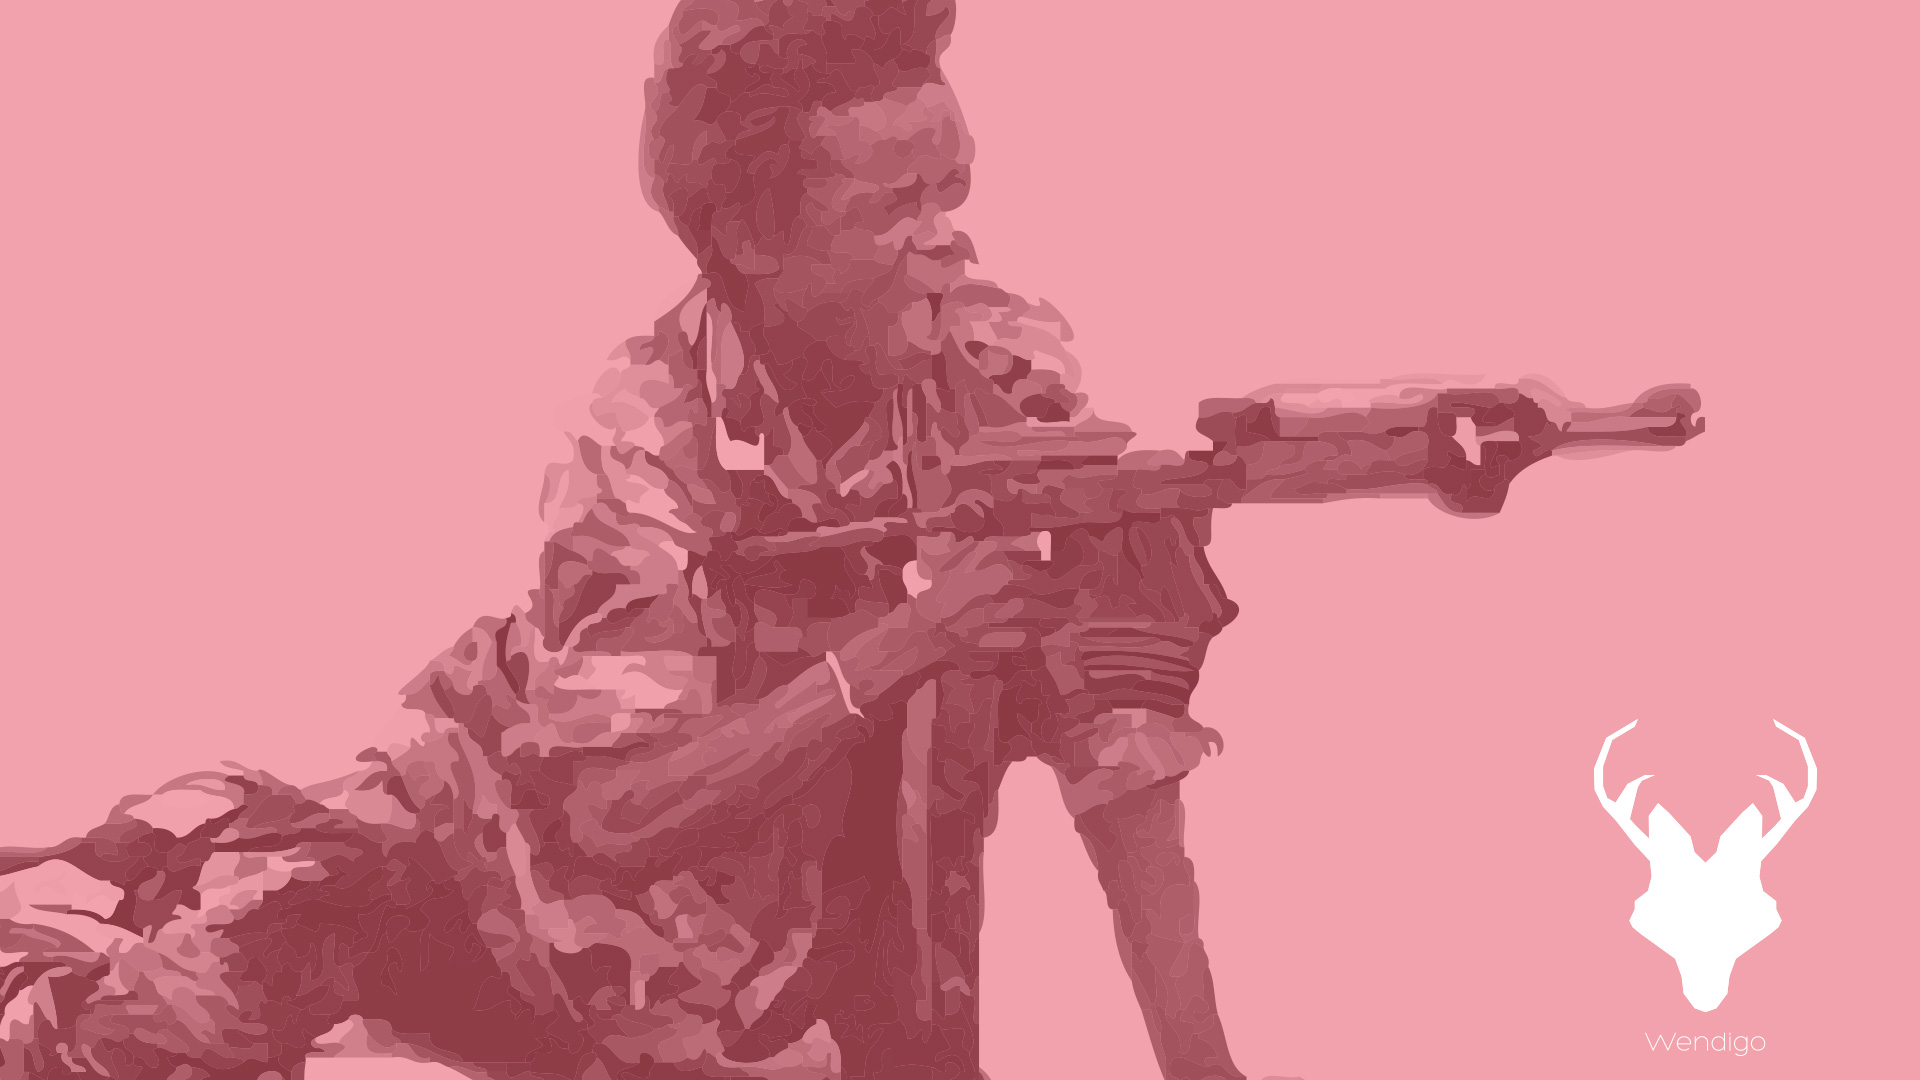 Child Soldiers After Effects animation